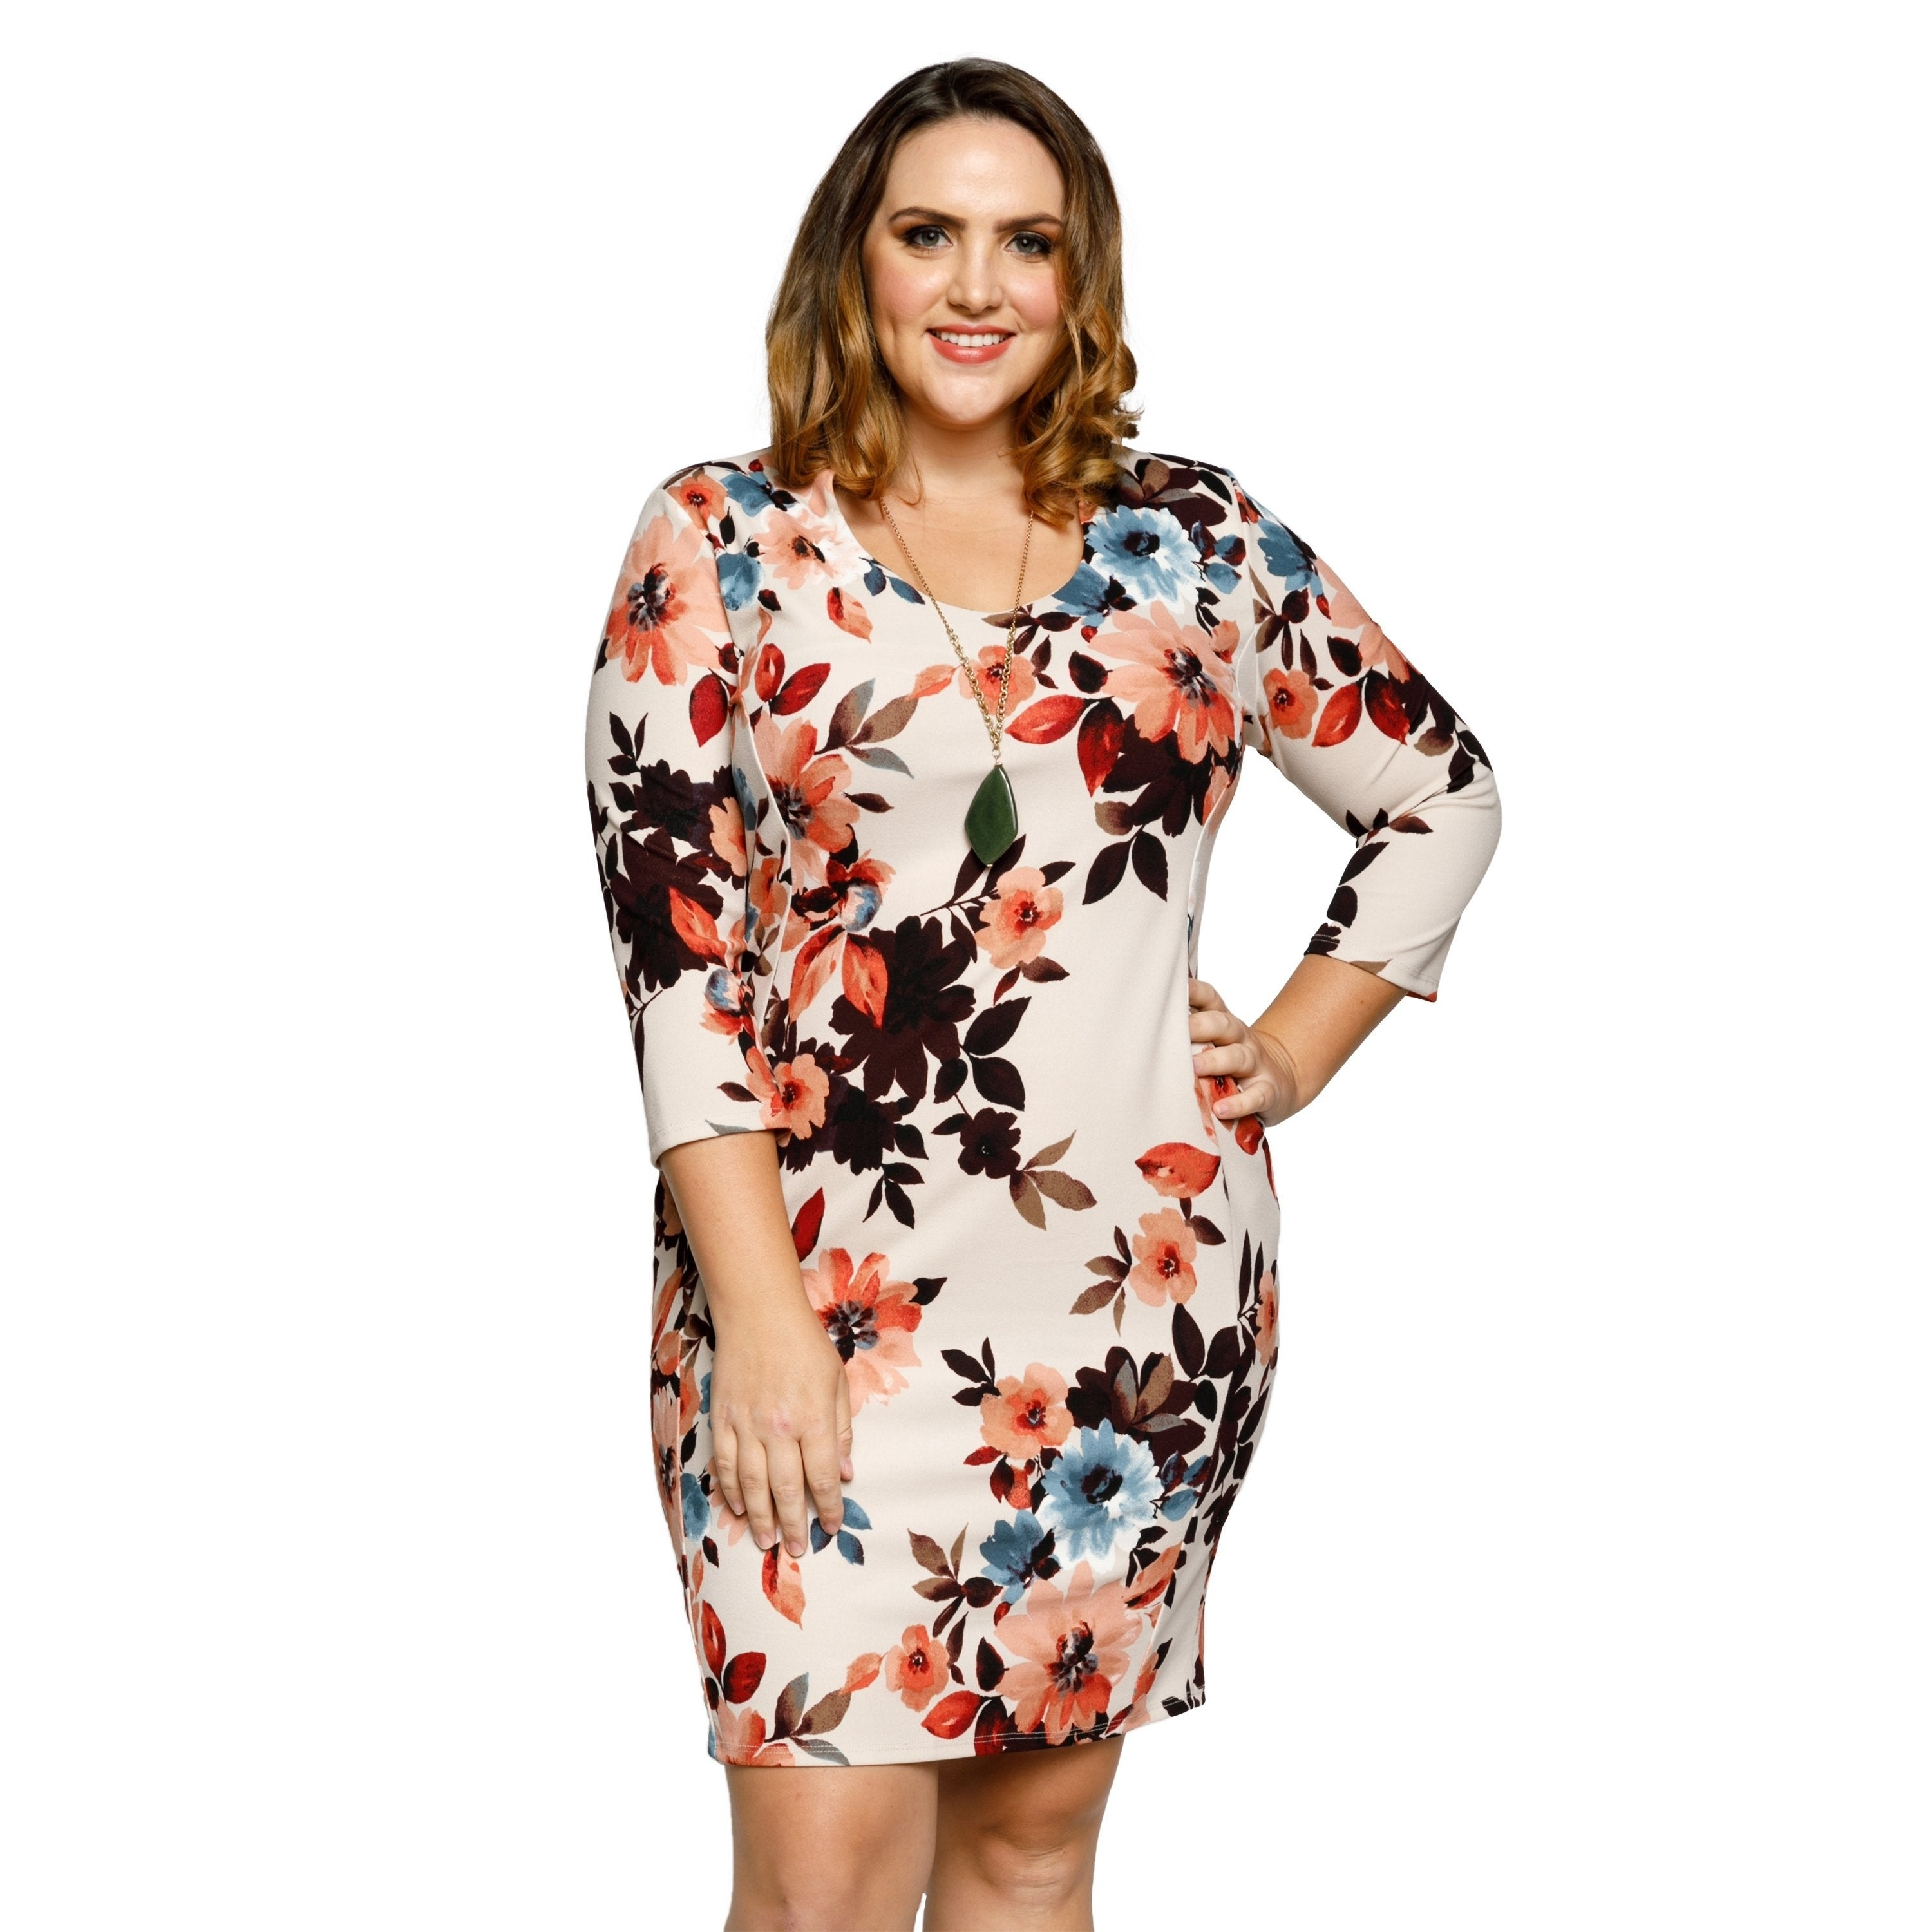 5f5400aafb Shop Xehar Womens Plus Size Scoop Neck 3 4 Sleeve Floral Bodycon Dress -  Free Shipping Today - Overstock - 18223240